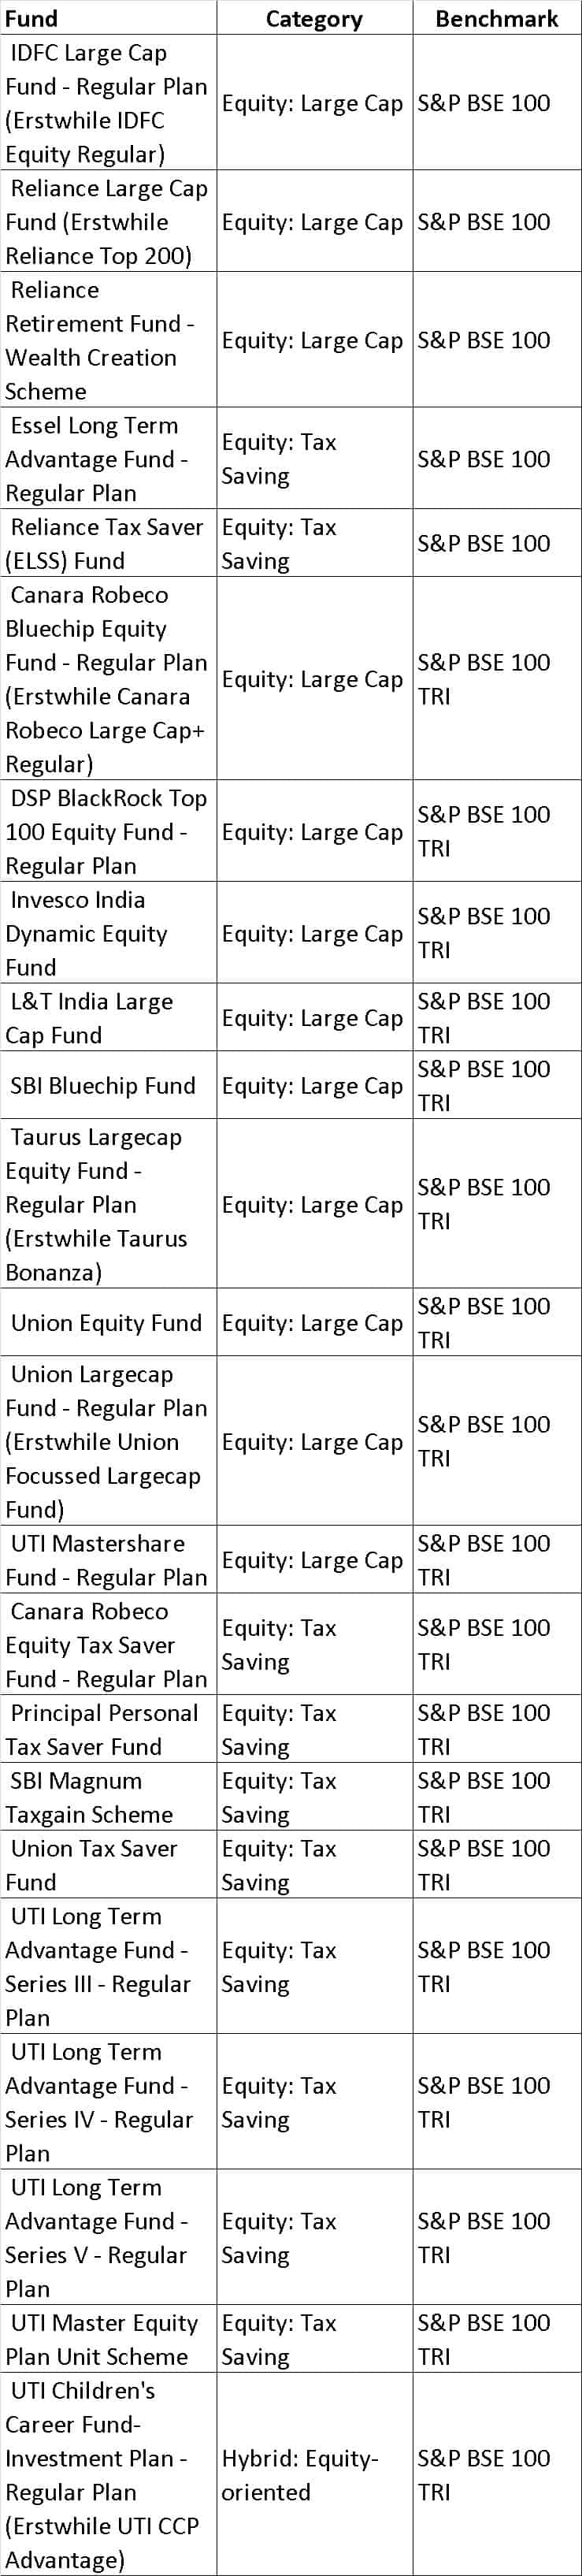 BSE 100 - List of mutual fund benchmarks (2018) with funds sorted by benchmark